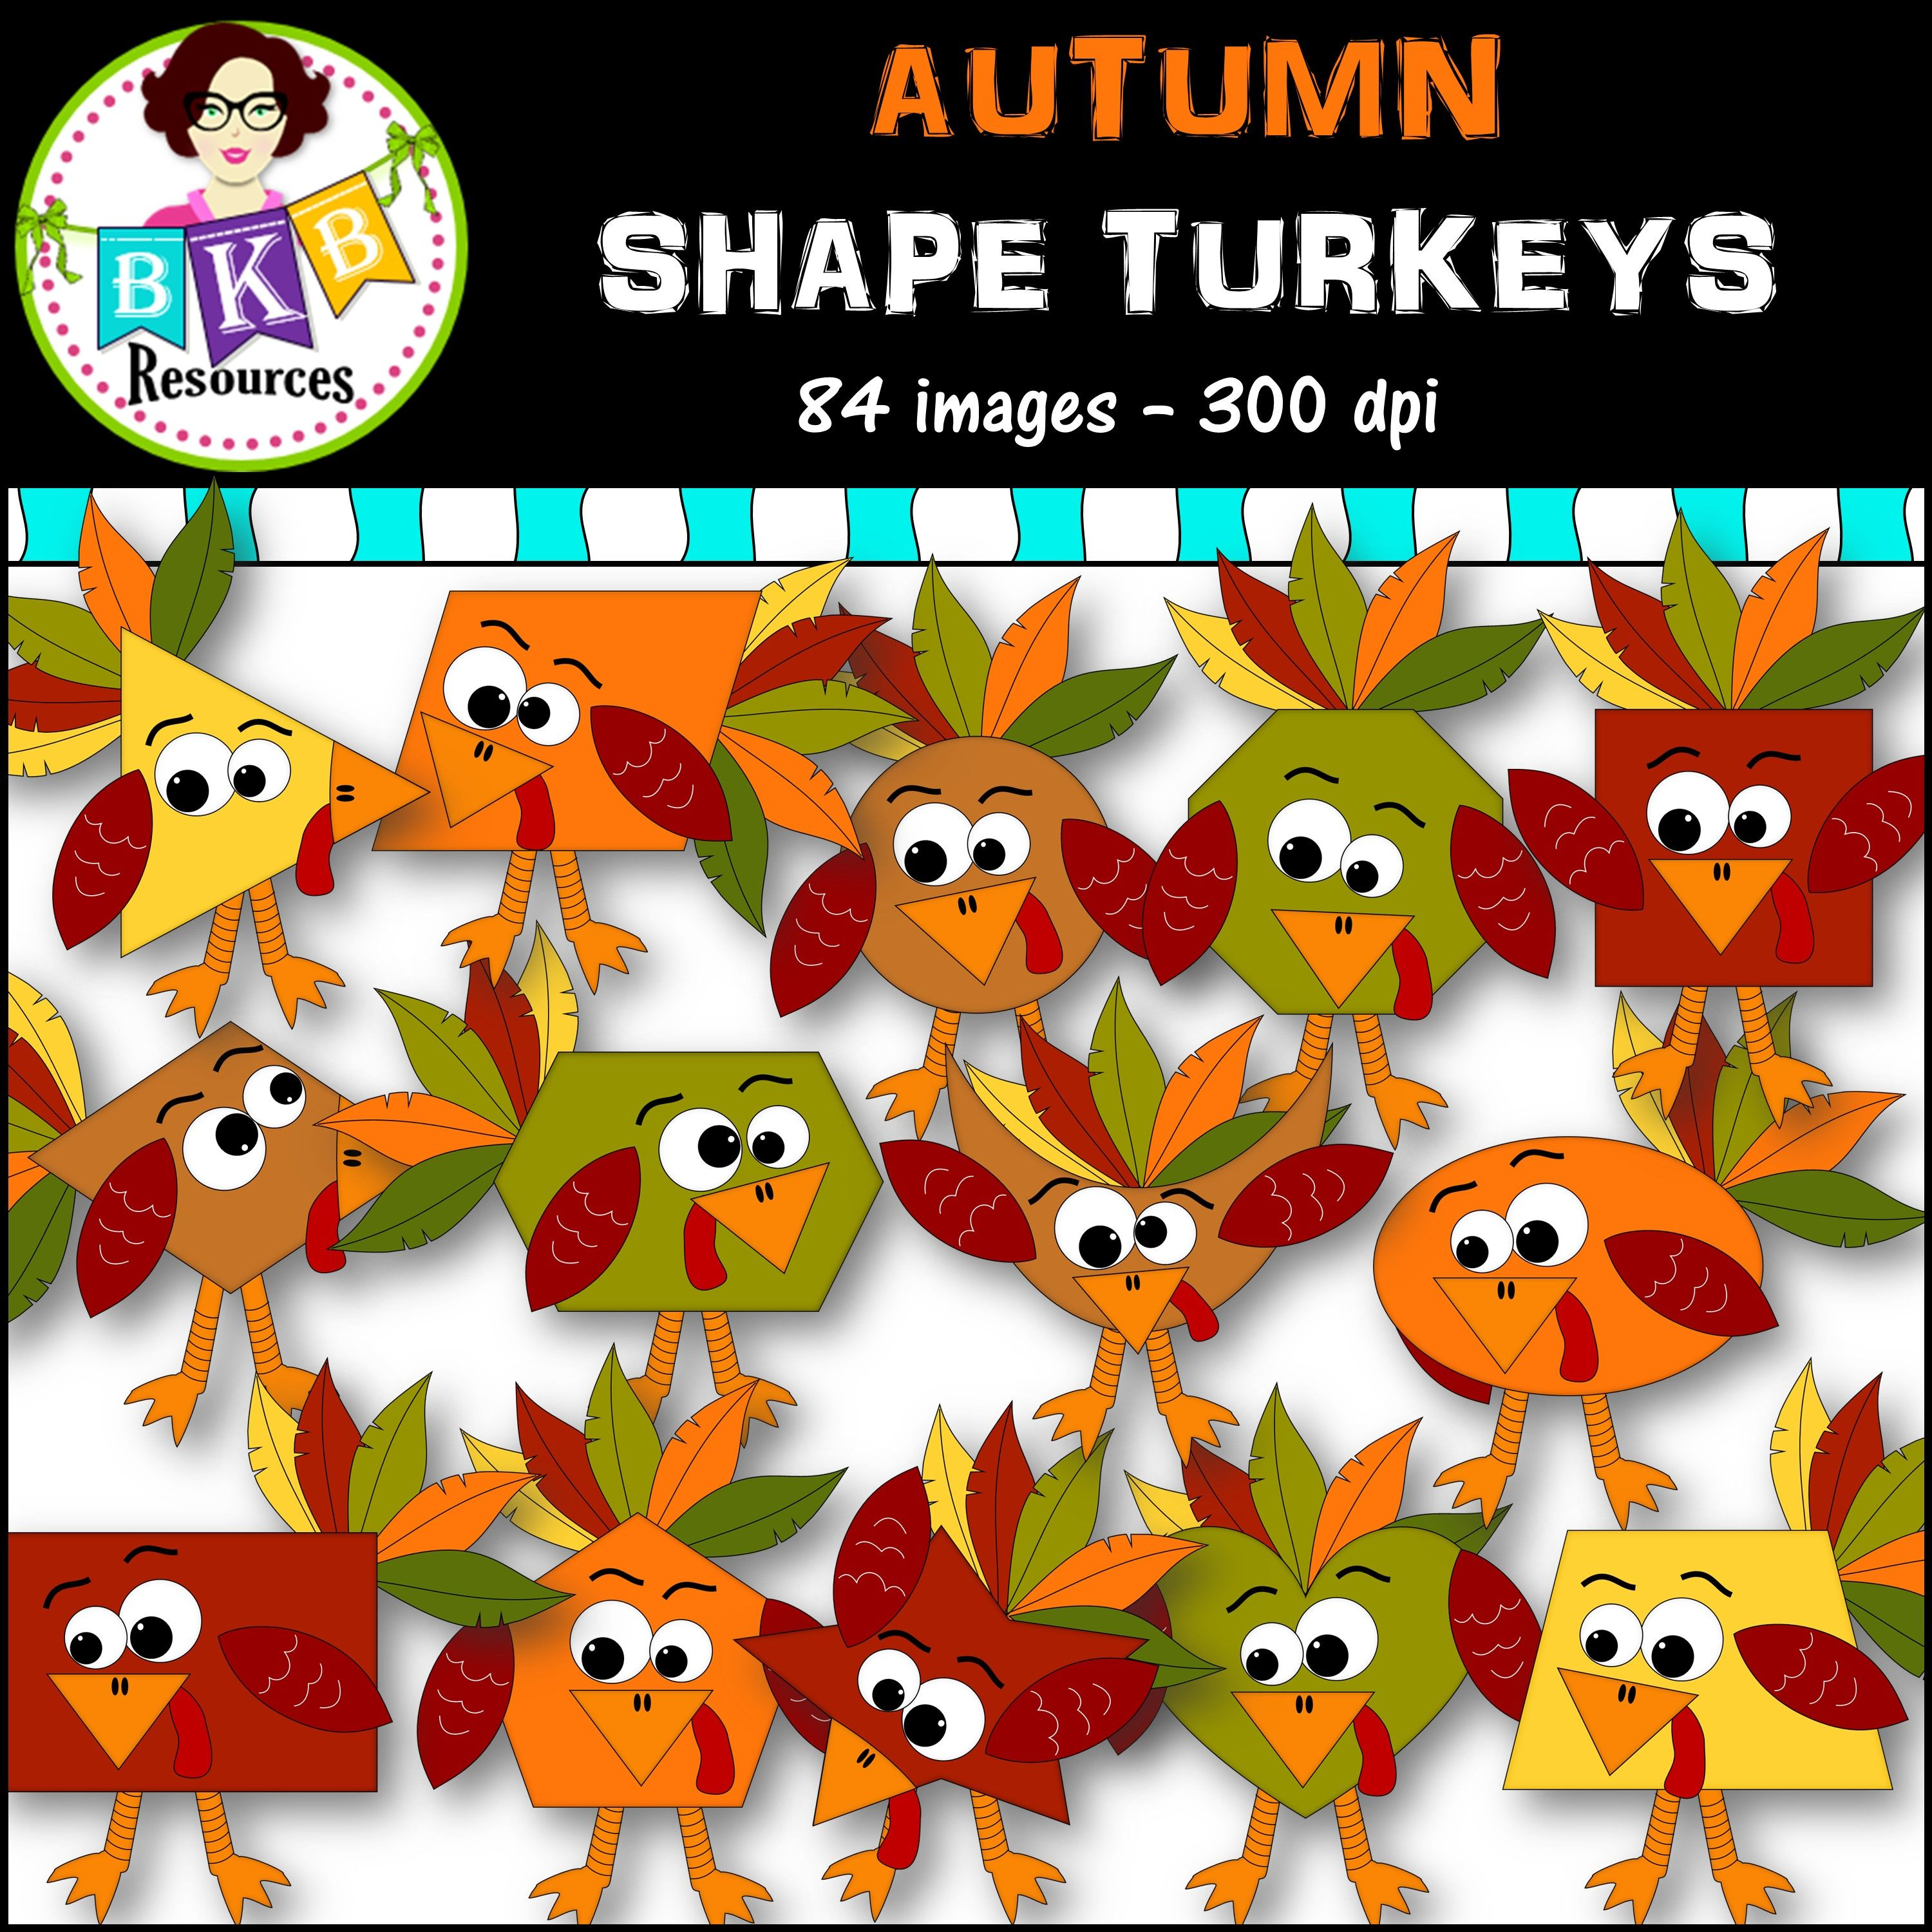 Clip Art ○ Autumn Shapes Turkey Pack ○ Digital Images ○ Products ...